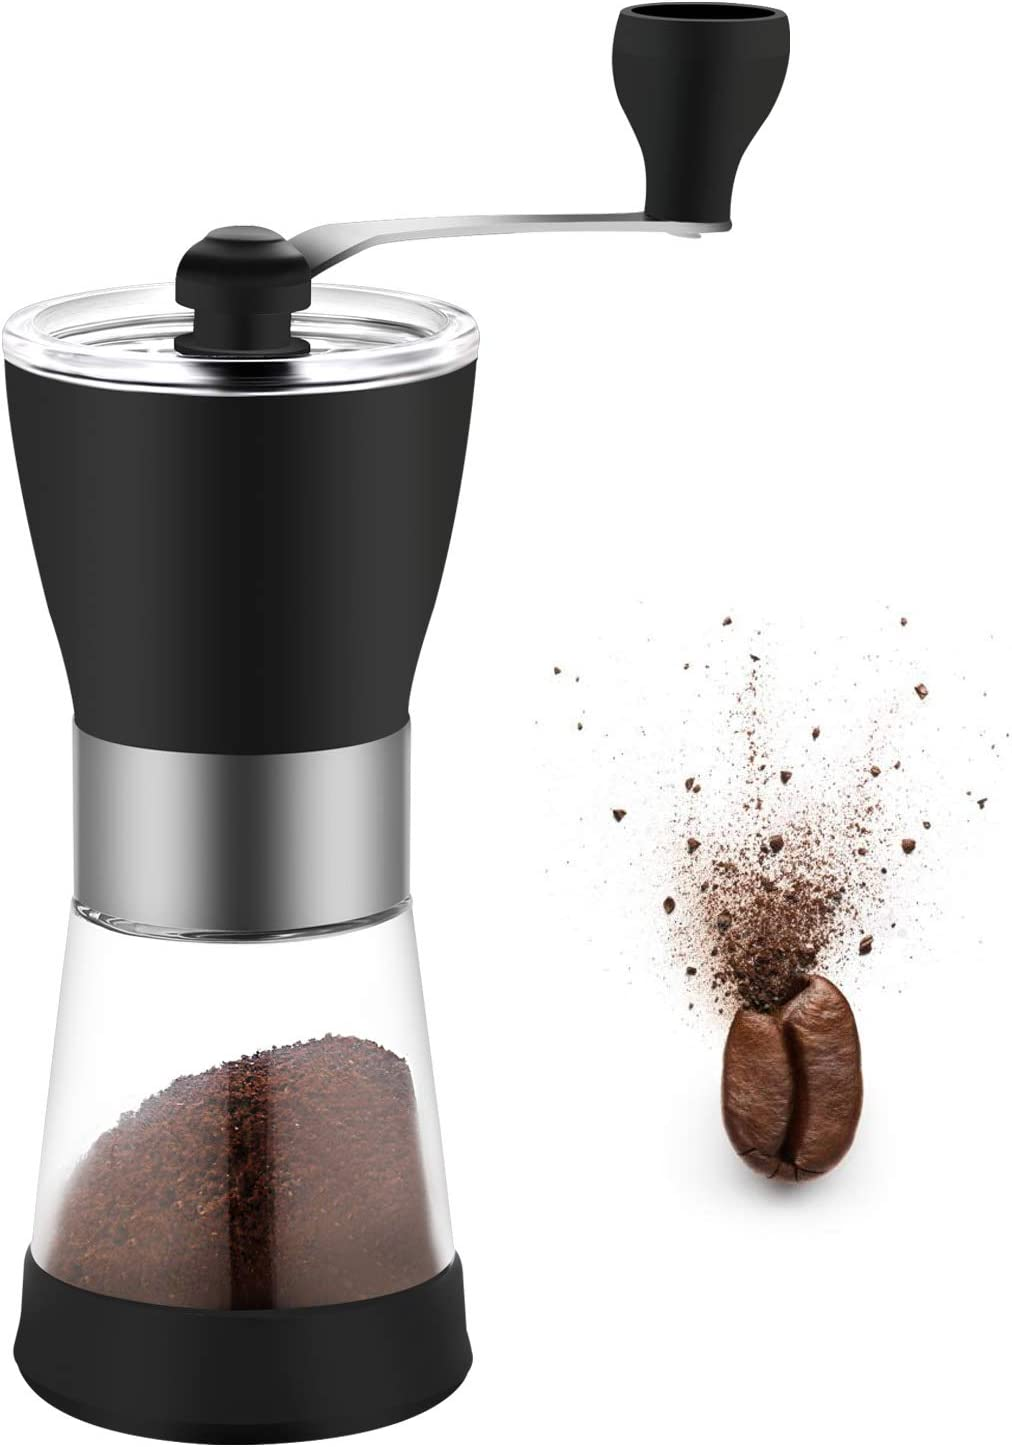 Manual Coffee Grinder, Ceramic Burr Hand Coffee Grinder Mill, Adjustable for Fine/Coarse Grind, Perfect for Home and Camping